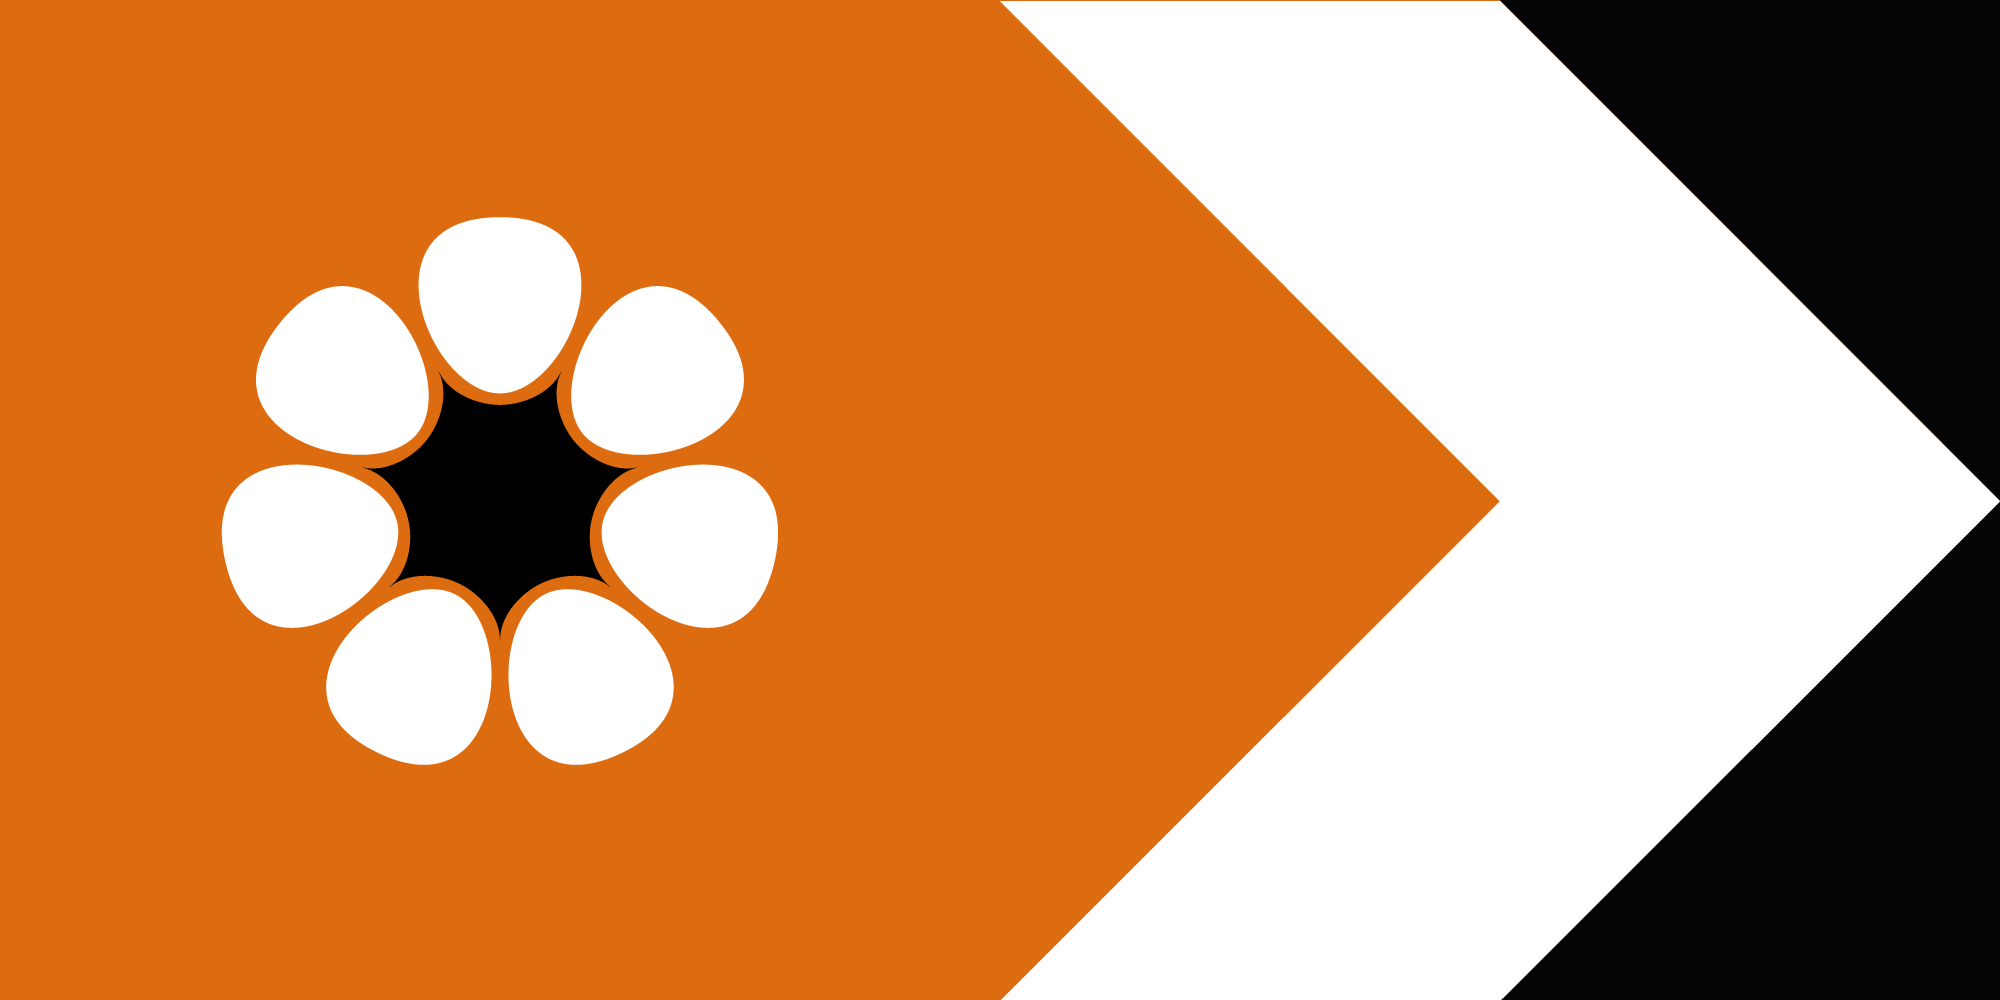 A state flag proposal for NT